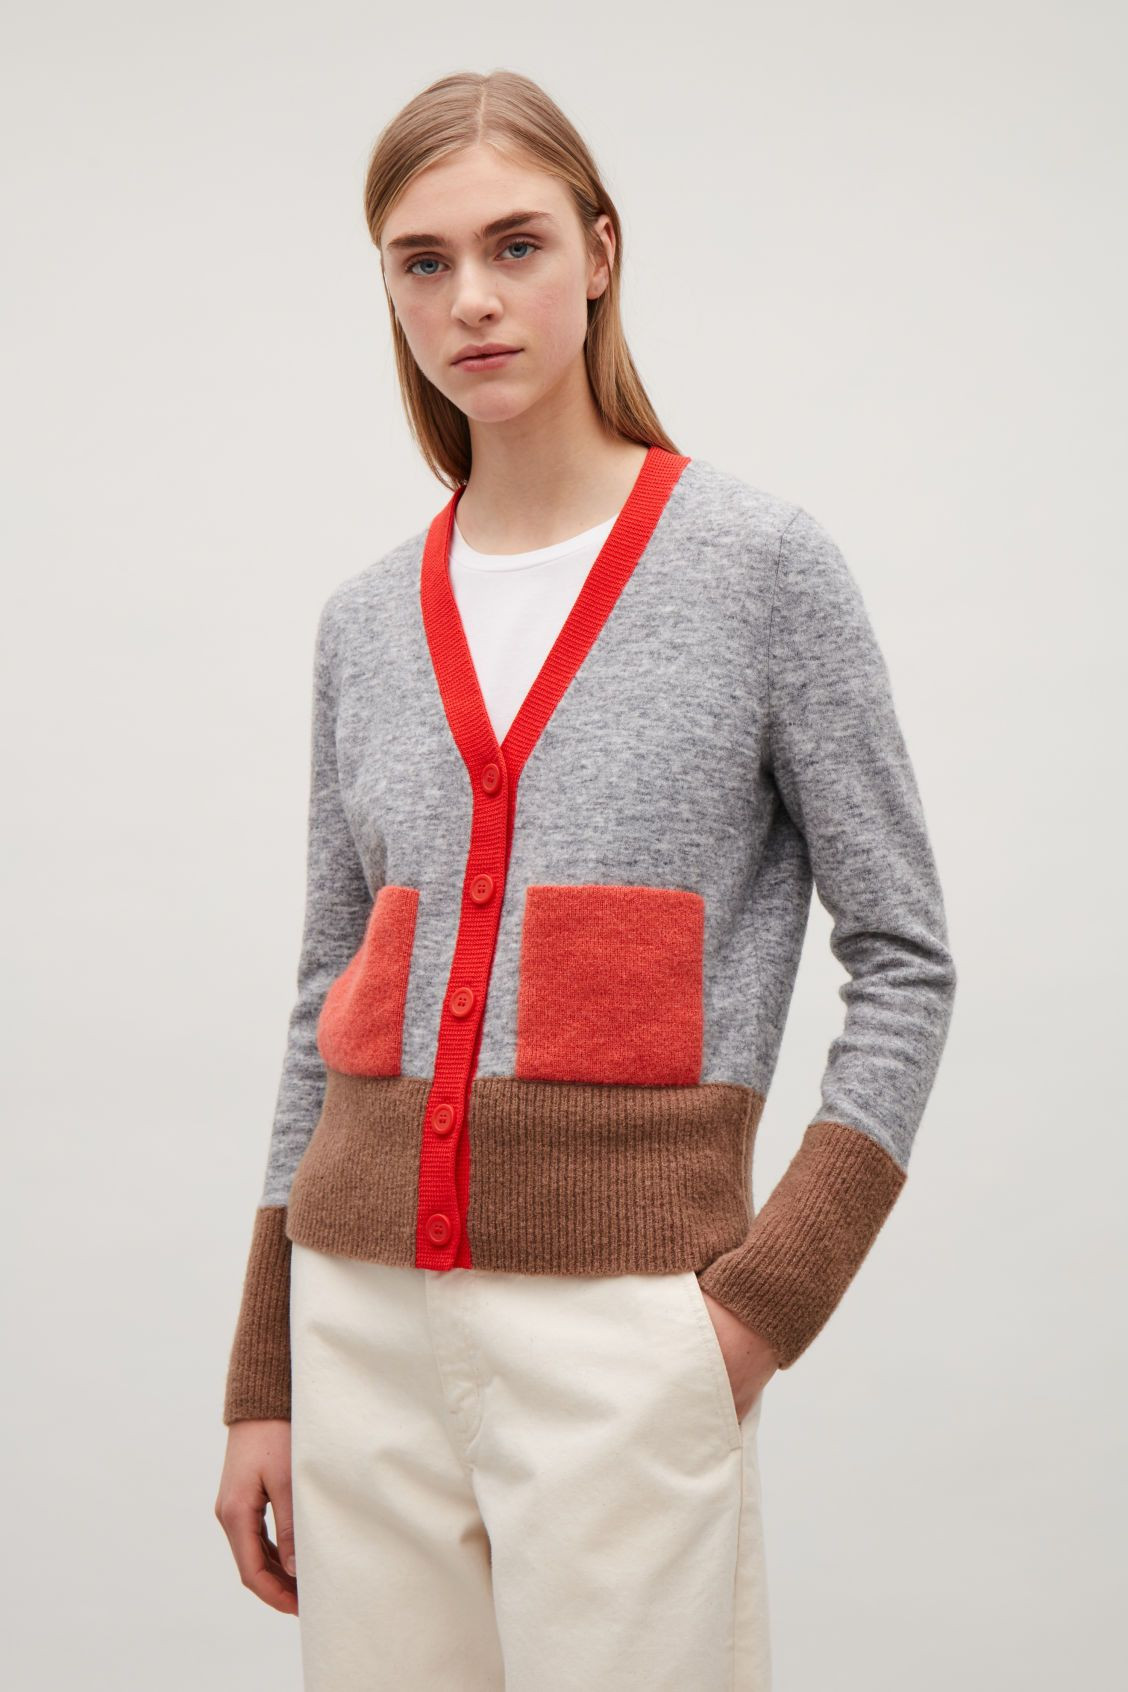 COLOUR-BLOCK CARDIGAN WITH POCKETS - Brick red - Cardigans - COS GB ... 6f1795437583